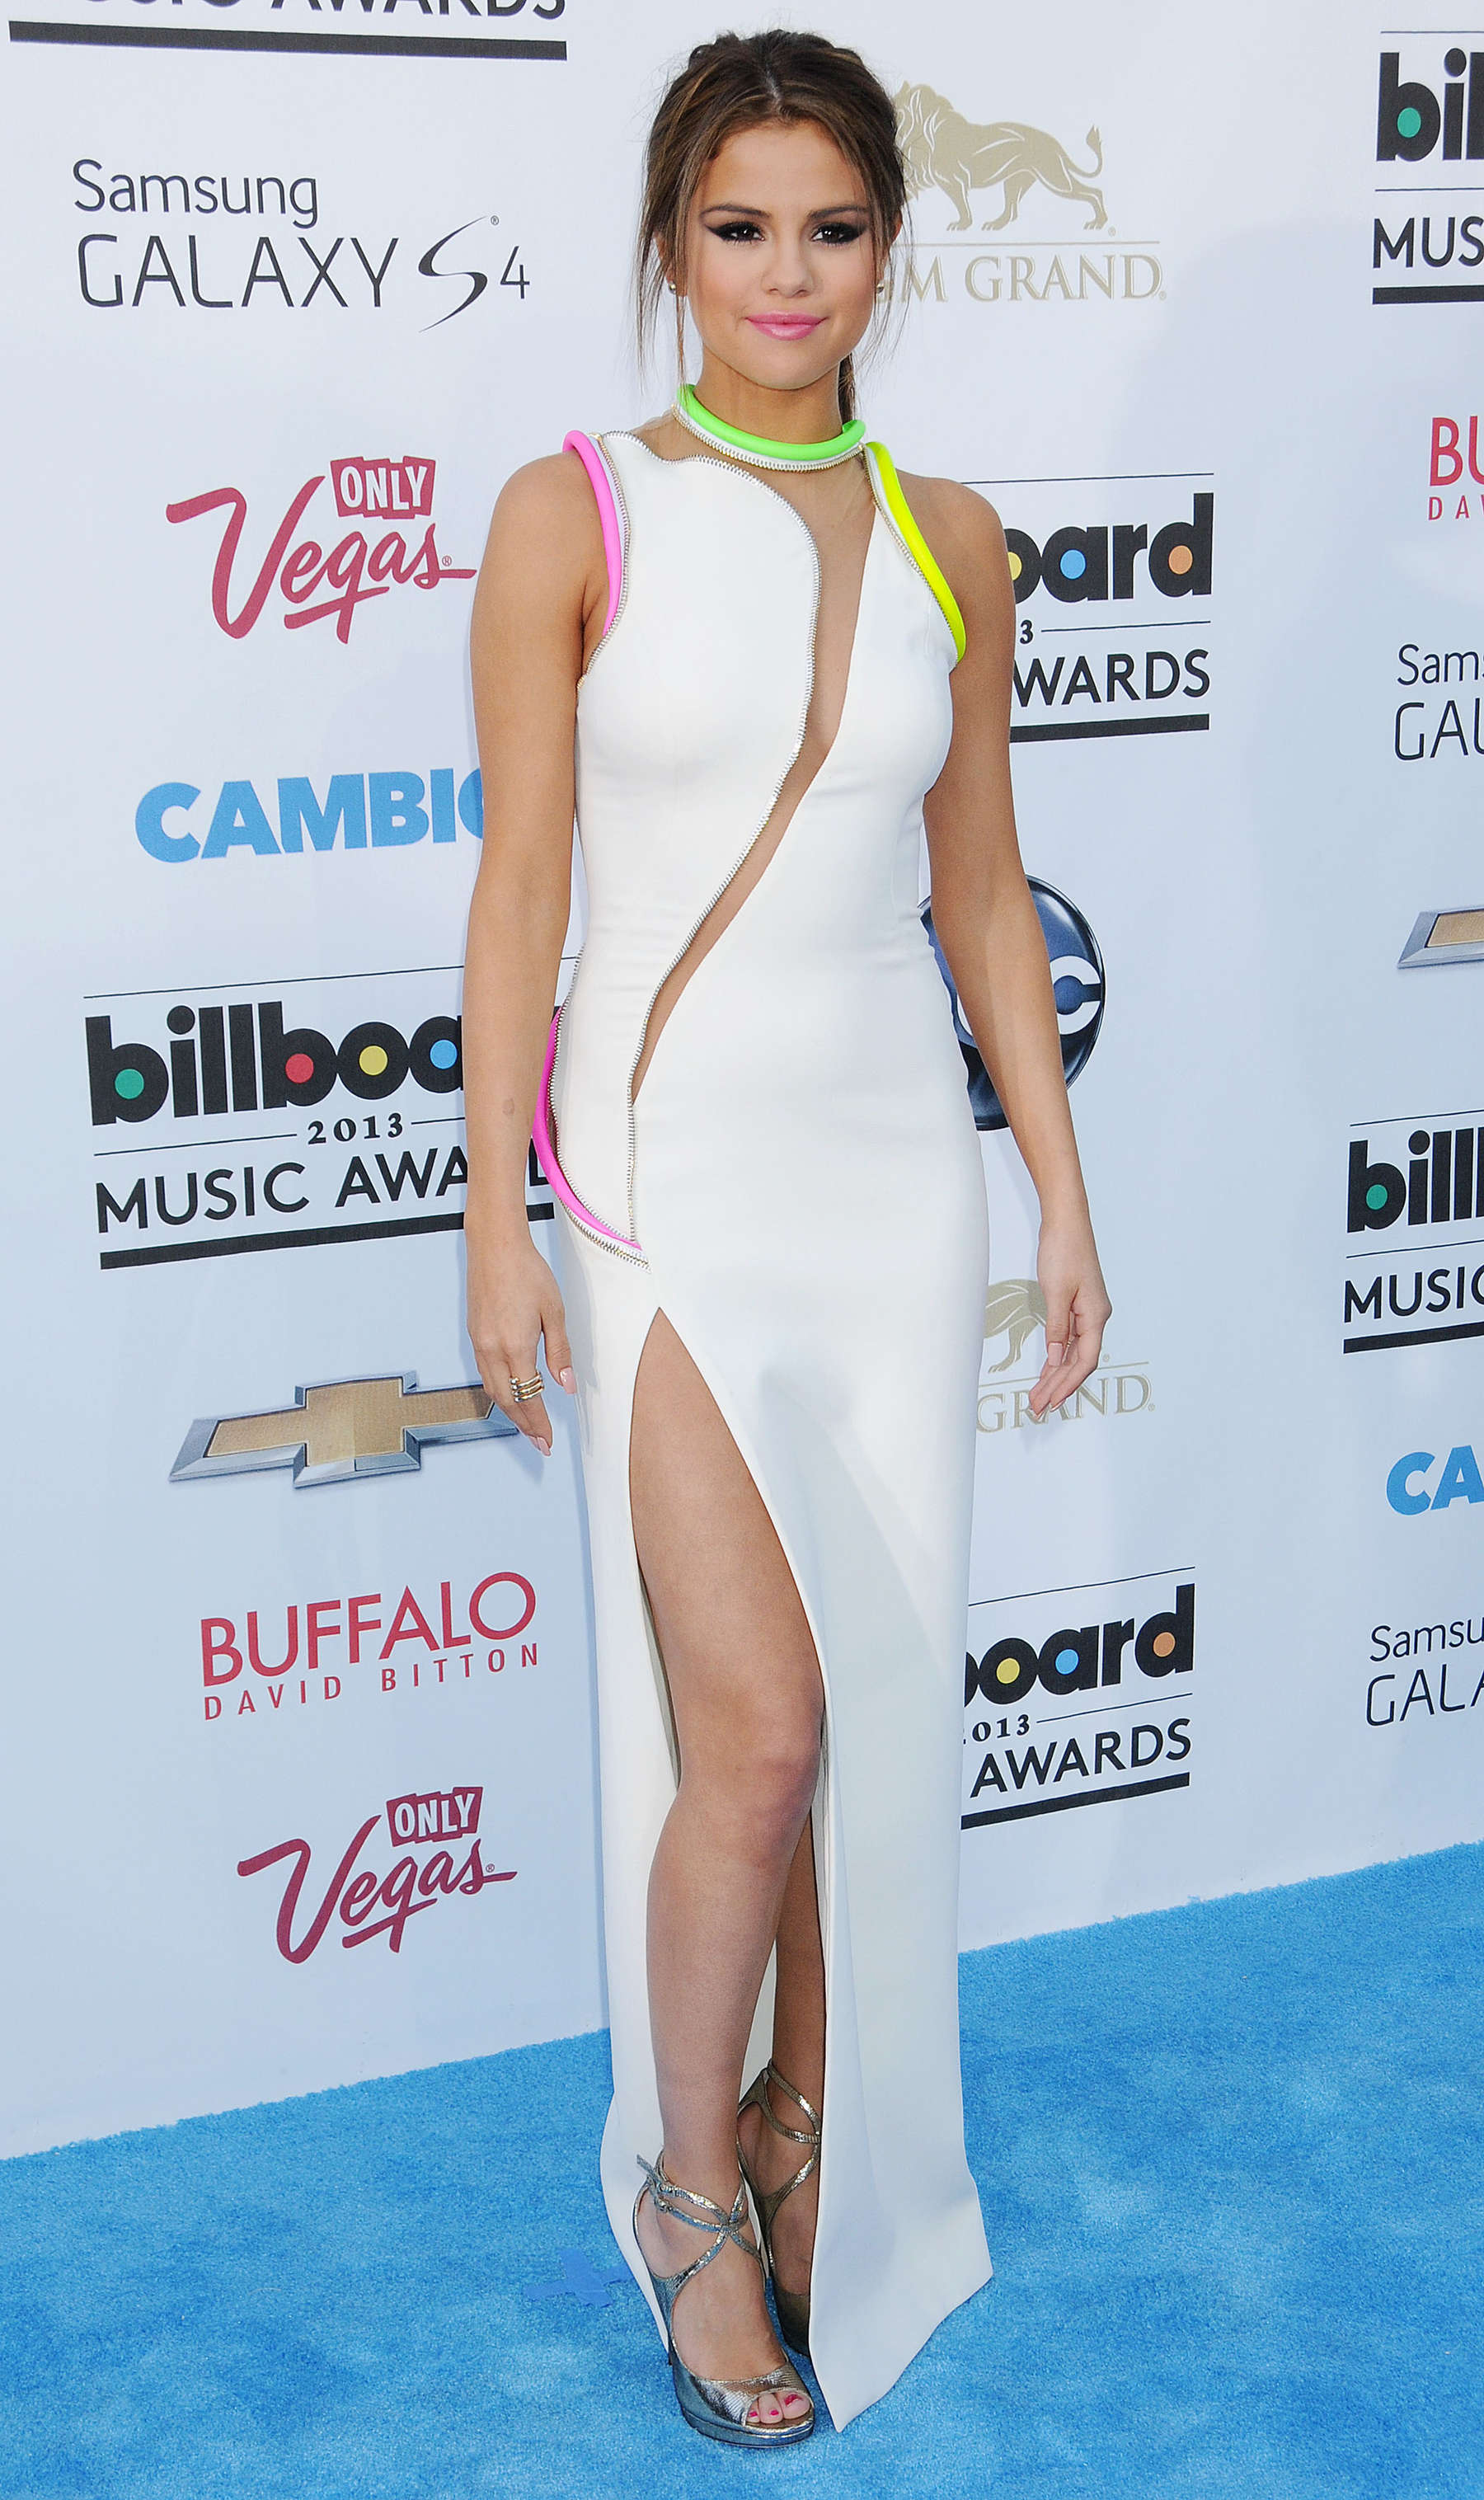 Selena gomez sexy in versace couture dress at the 2013 billboard published august 23 2013 at 1800 3032 voltagebd Images